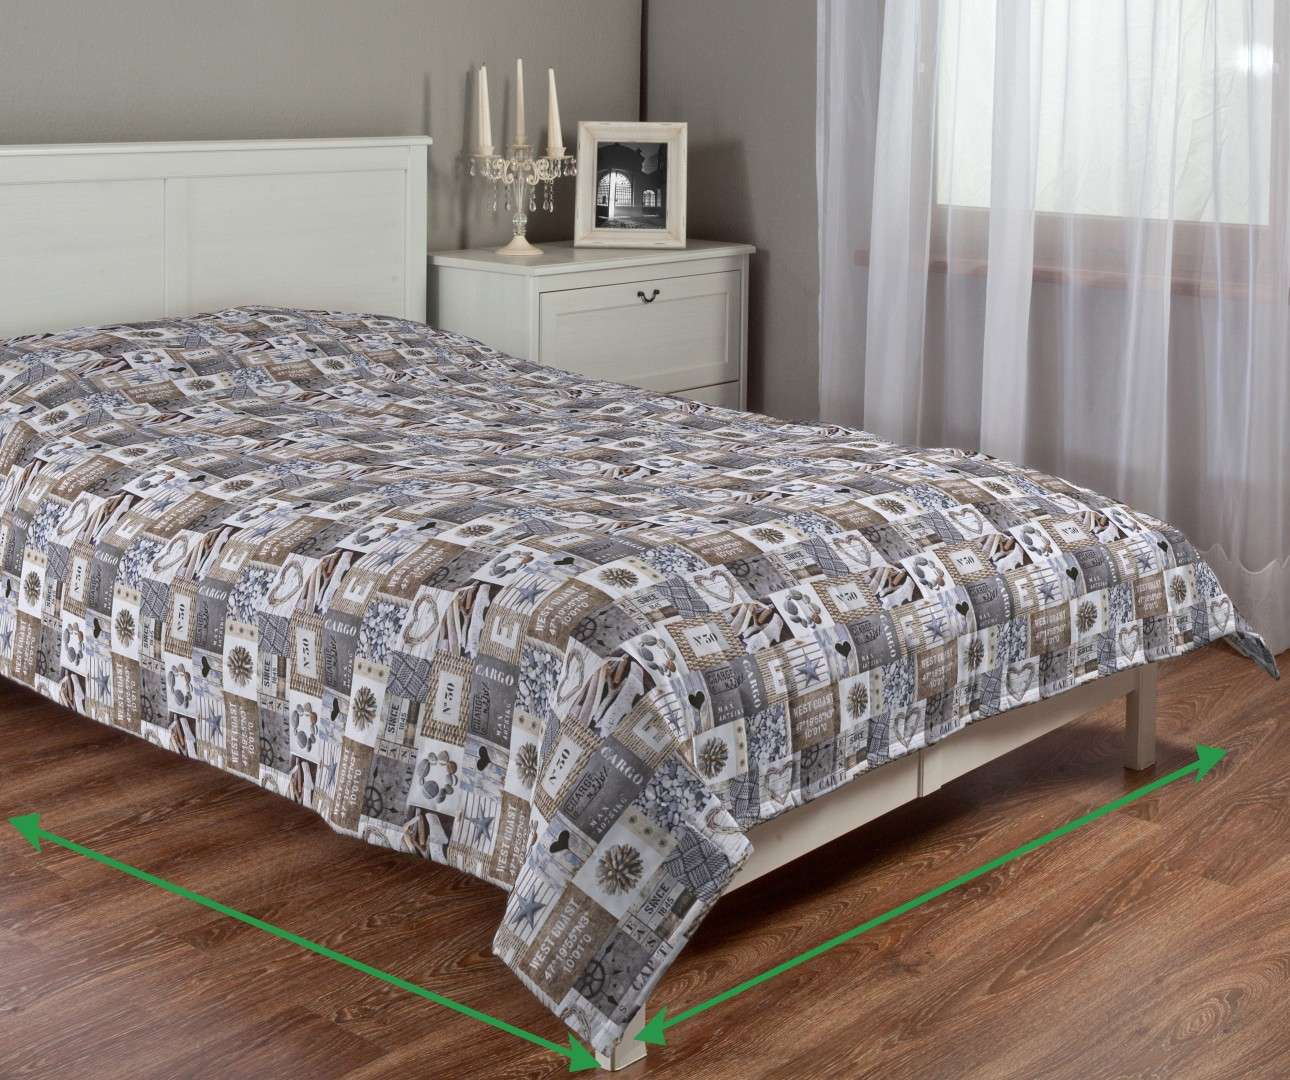 Quilted throw (vertical quilt pattern) in collection Marina, fabric: 140-15